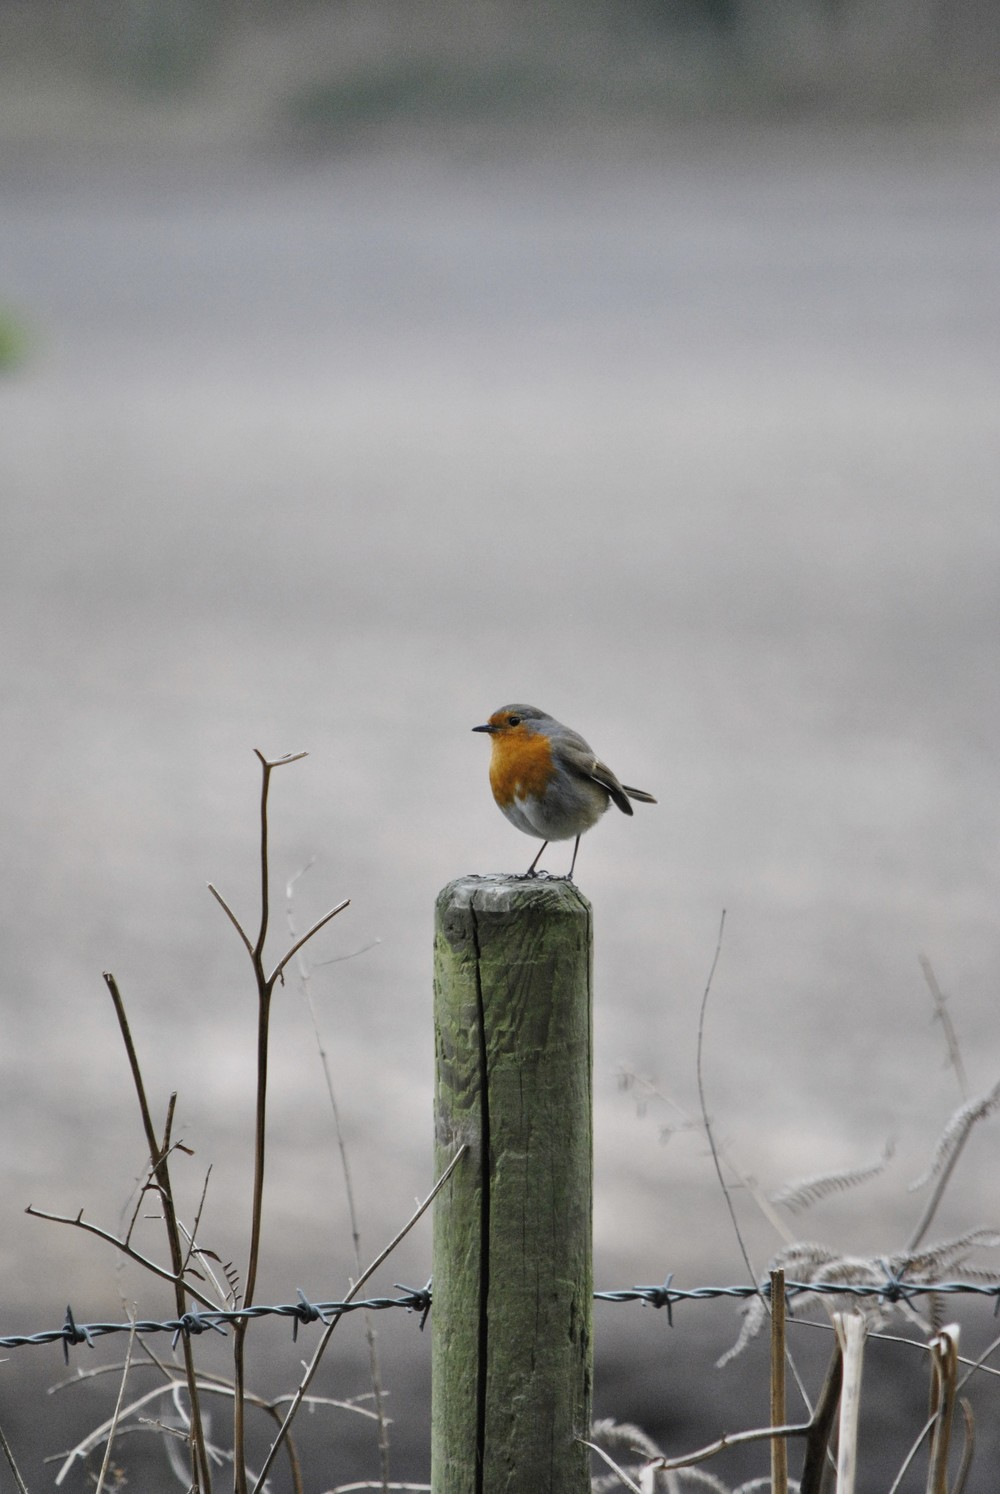 A robin perched outside the Ginger&Browns pet shop in Northwich, near Chester, Winsford and Frodsham in Cheshire.